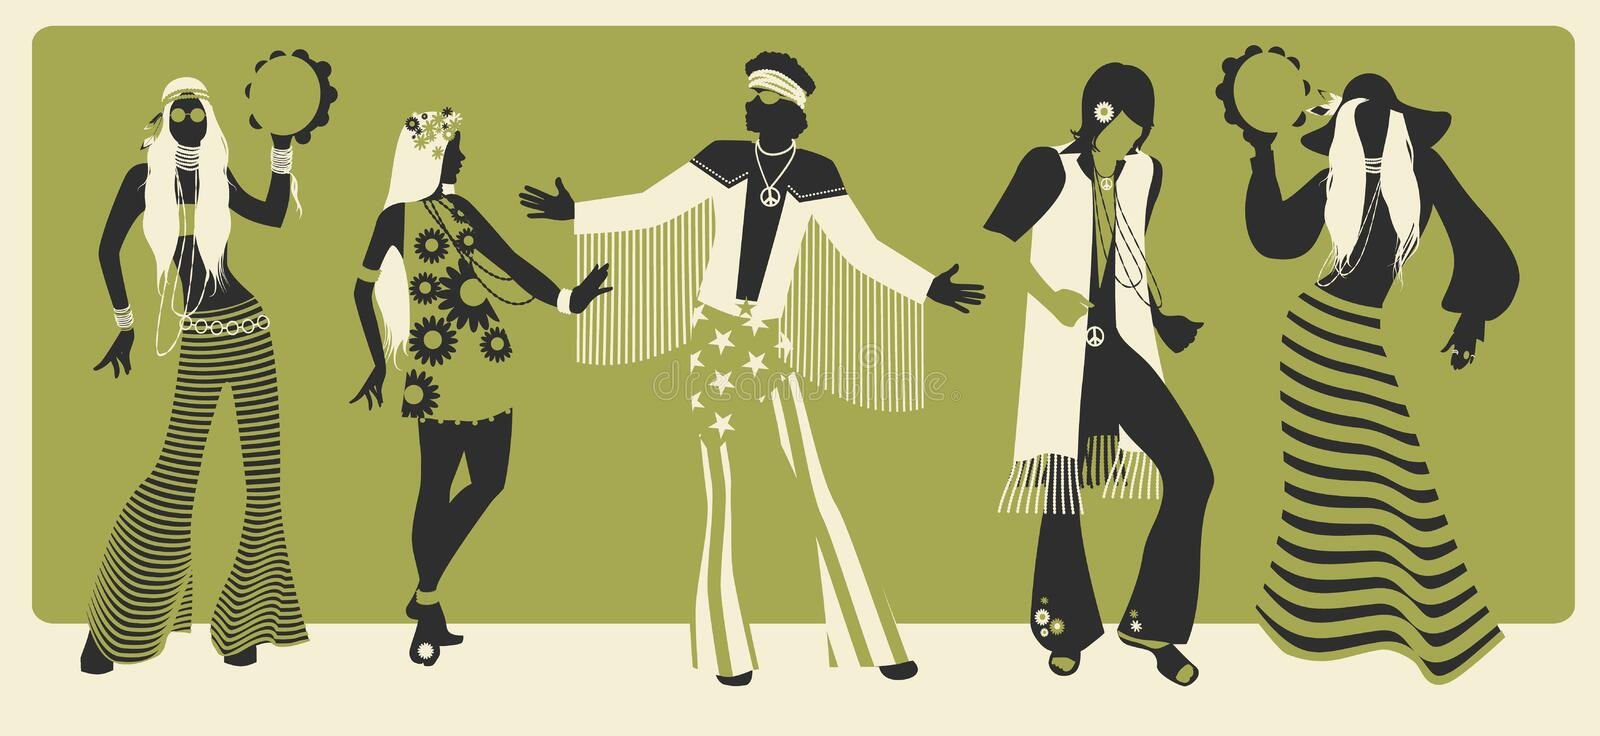 Group of five wearing hippie clothes of the 60s and 70s dancing. Vector illustration royalty free illustration